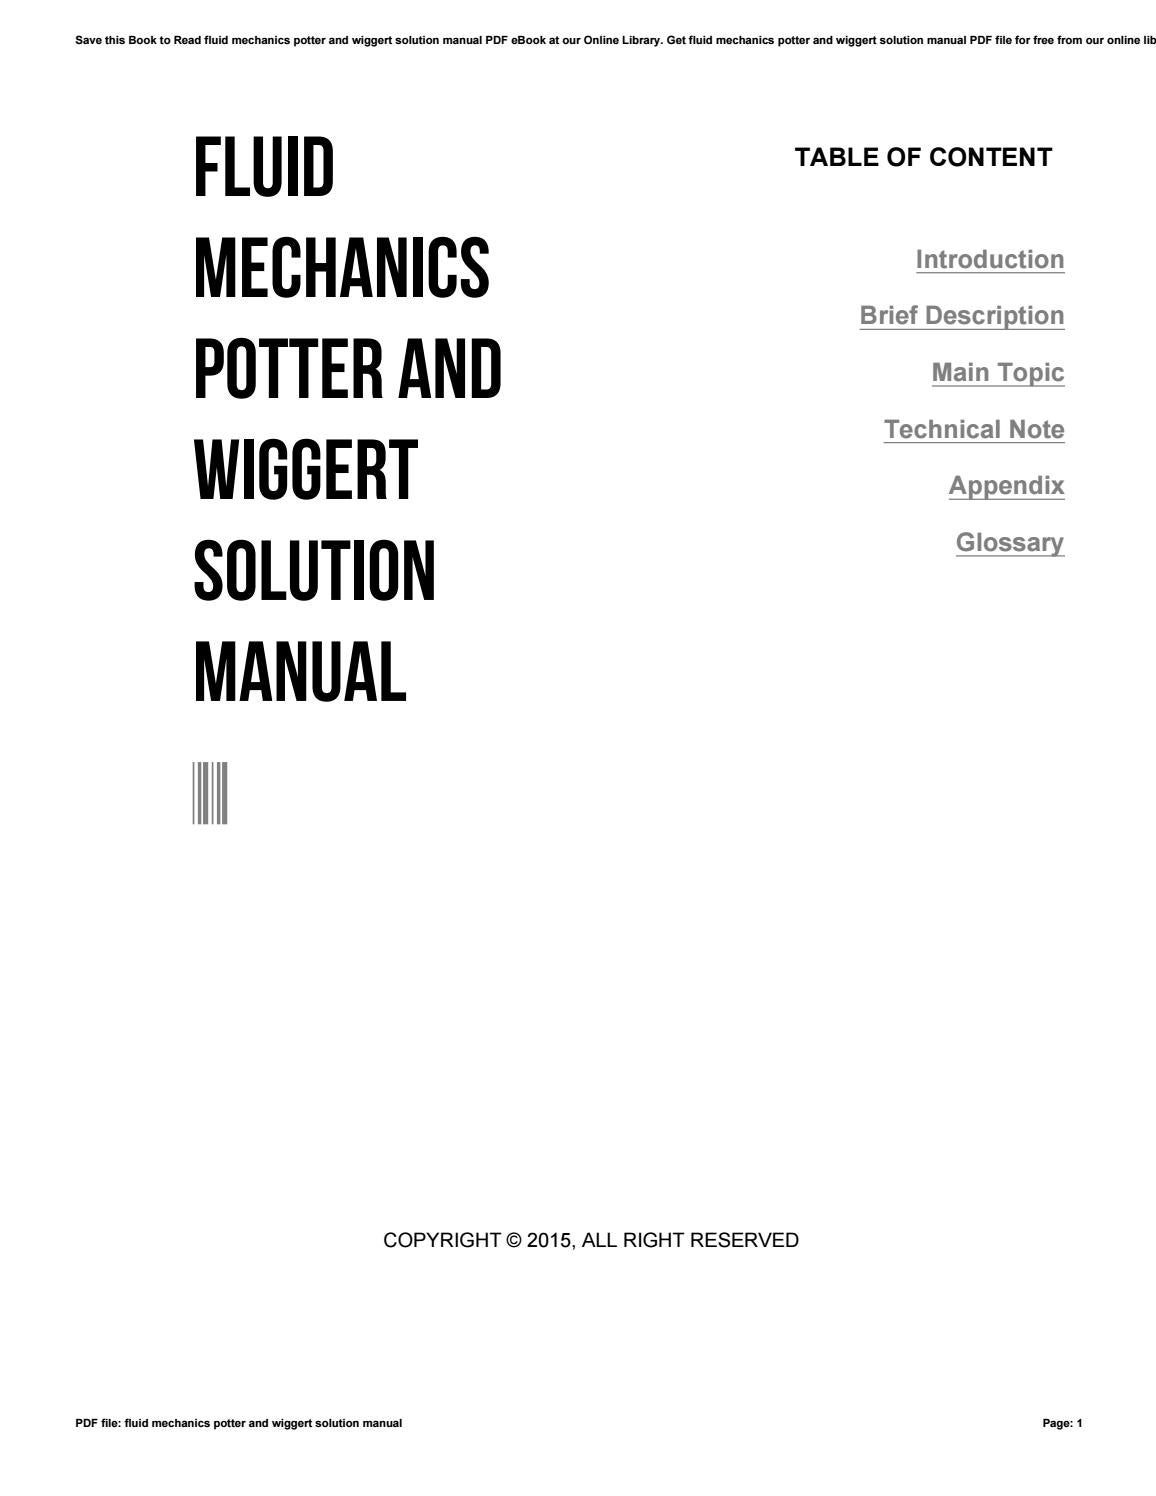 Fluid mechanics potter and wiggert solution manual by letsmail9248 - issuu